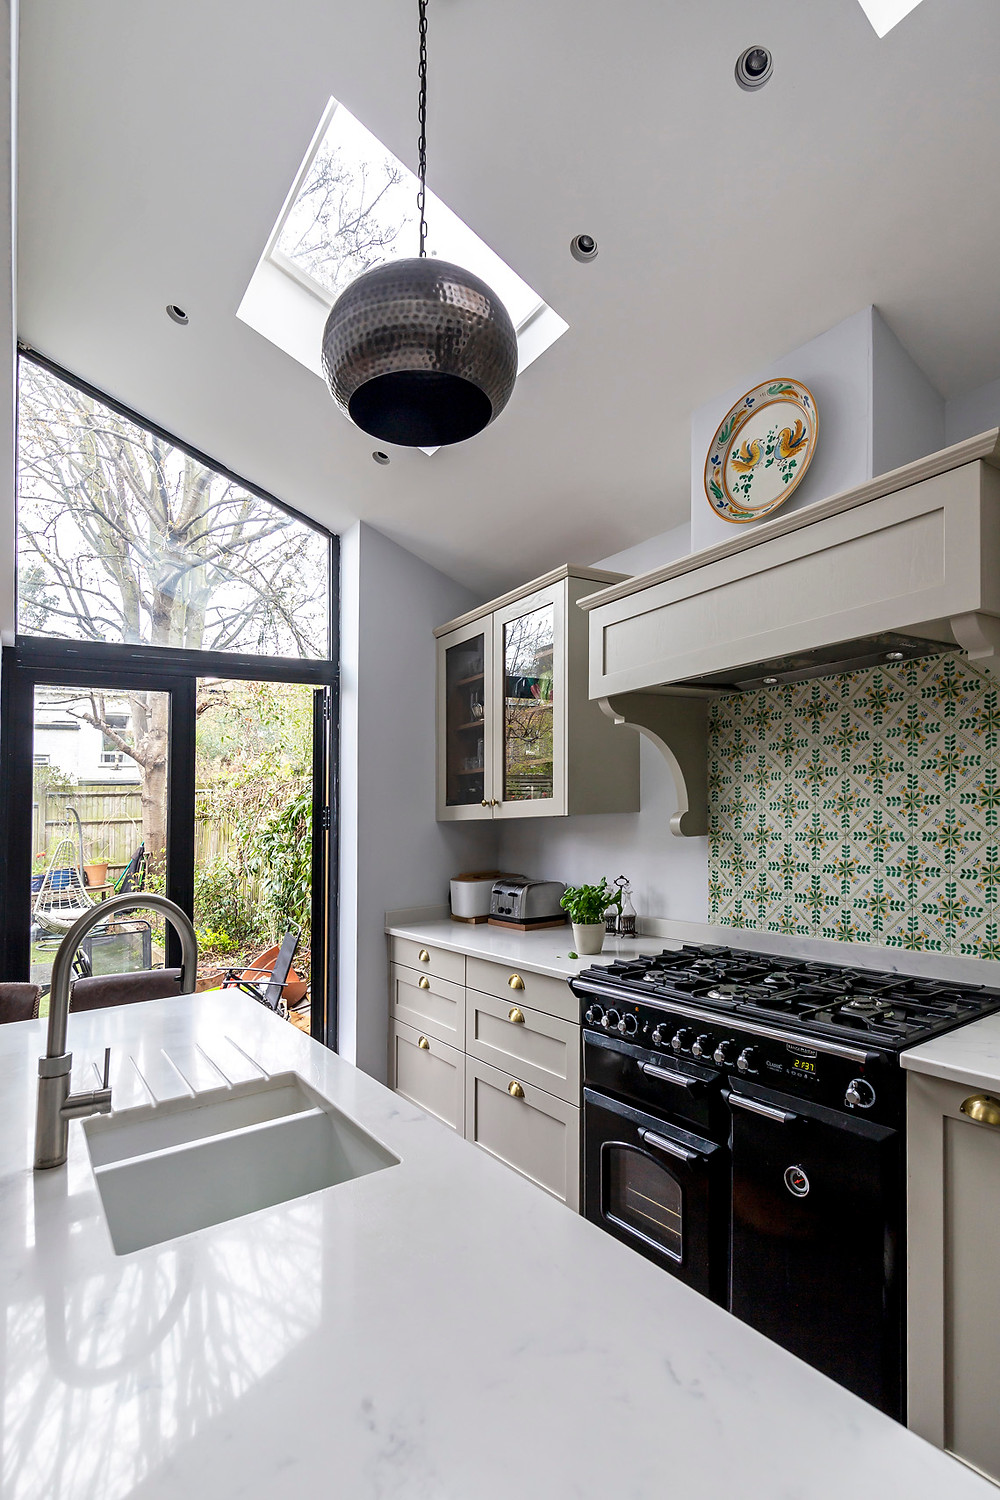 Kitchen island and range cooker with skylight and view to garden